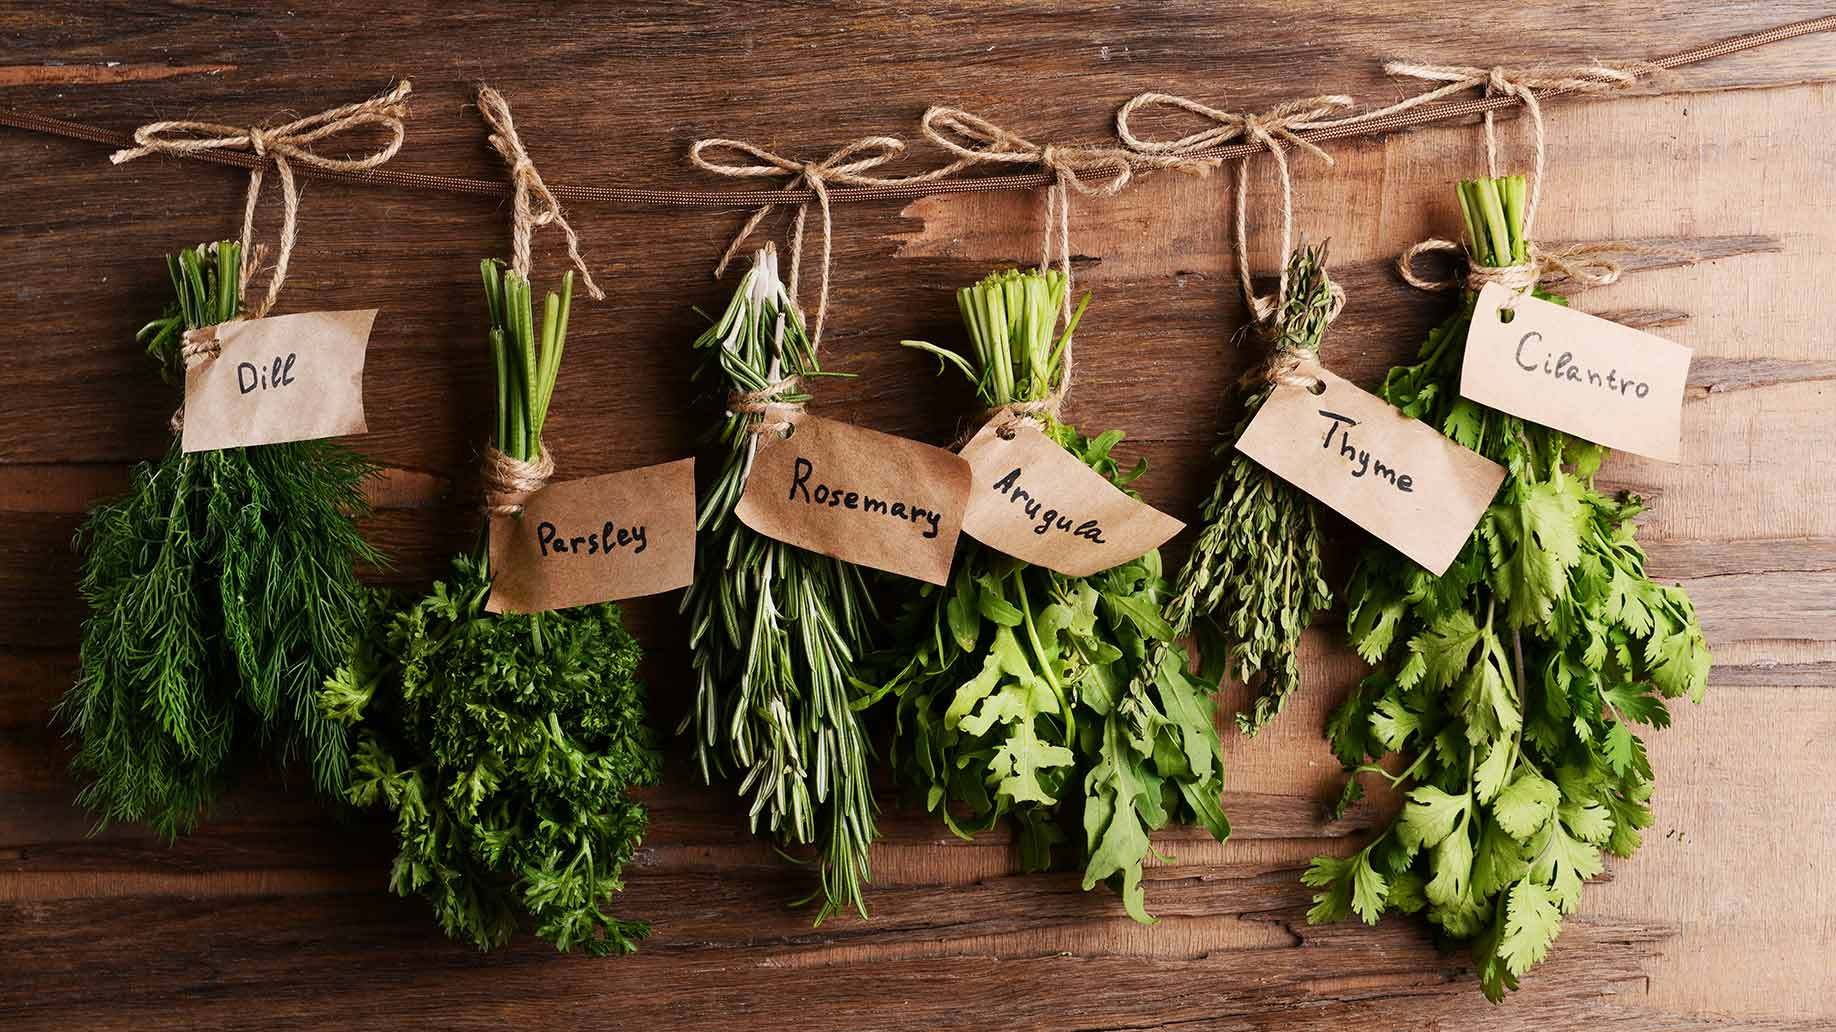 Powerful Plants: Medicinal Plants For Your Home or Garden - LIVE ...